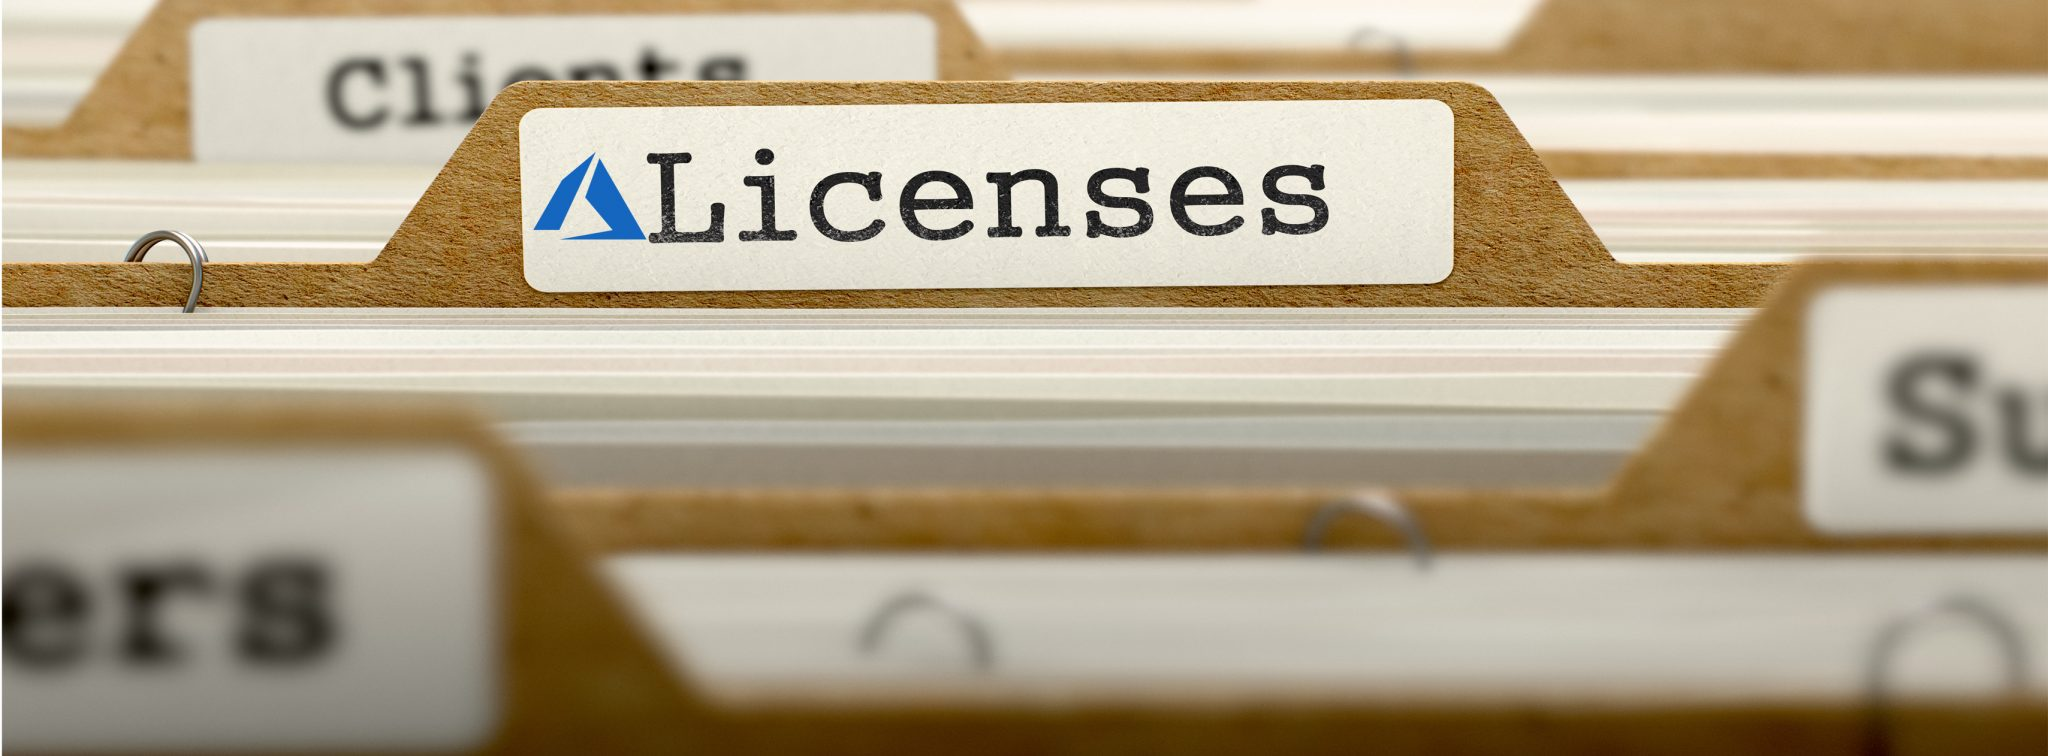 The Importance of IUT - Permanent Business License in Indonesia and How to Obtain It